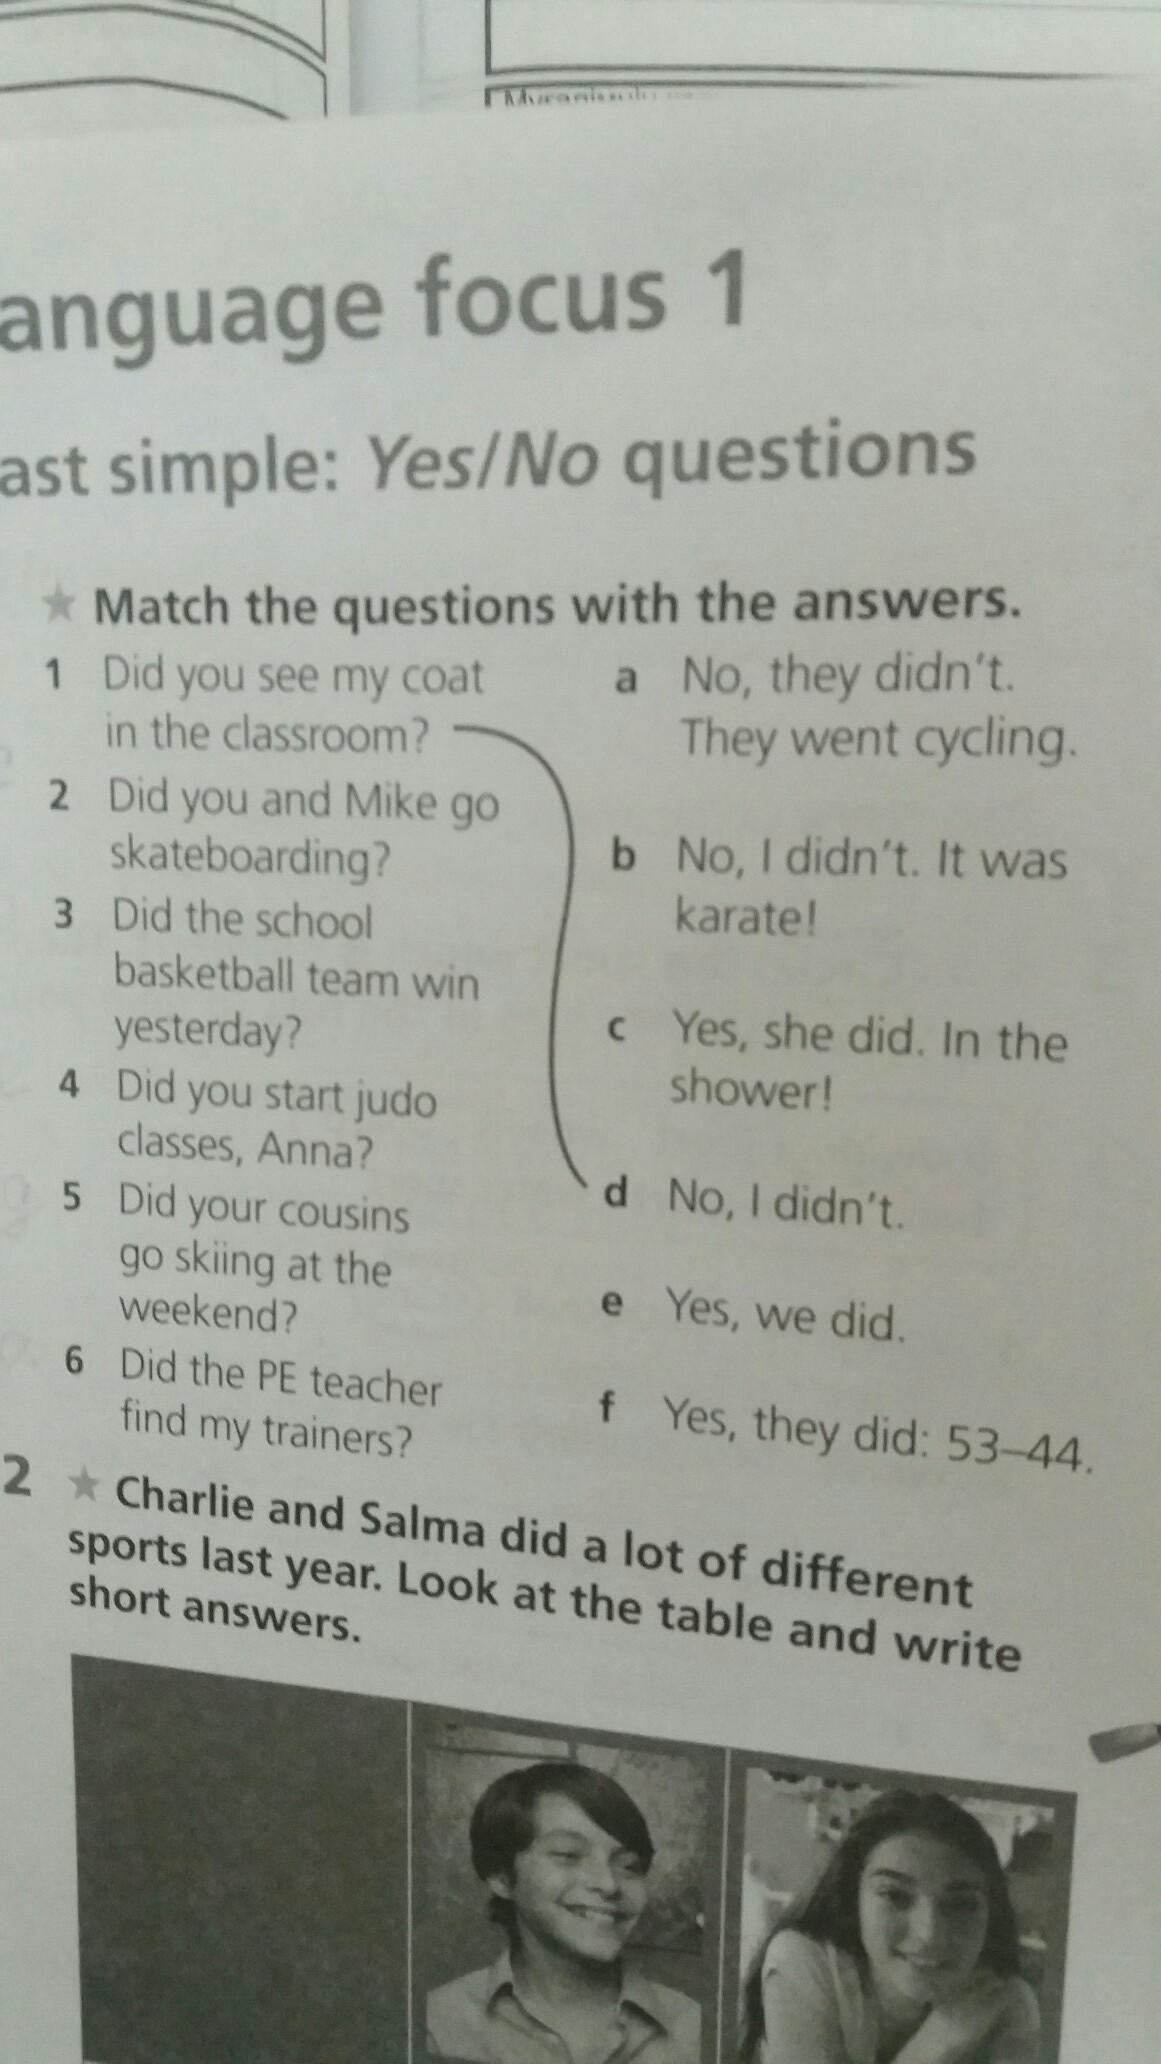 Past simple:Yes/No questions 